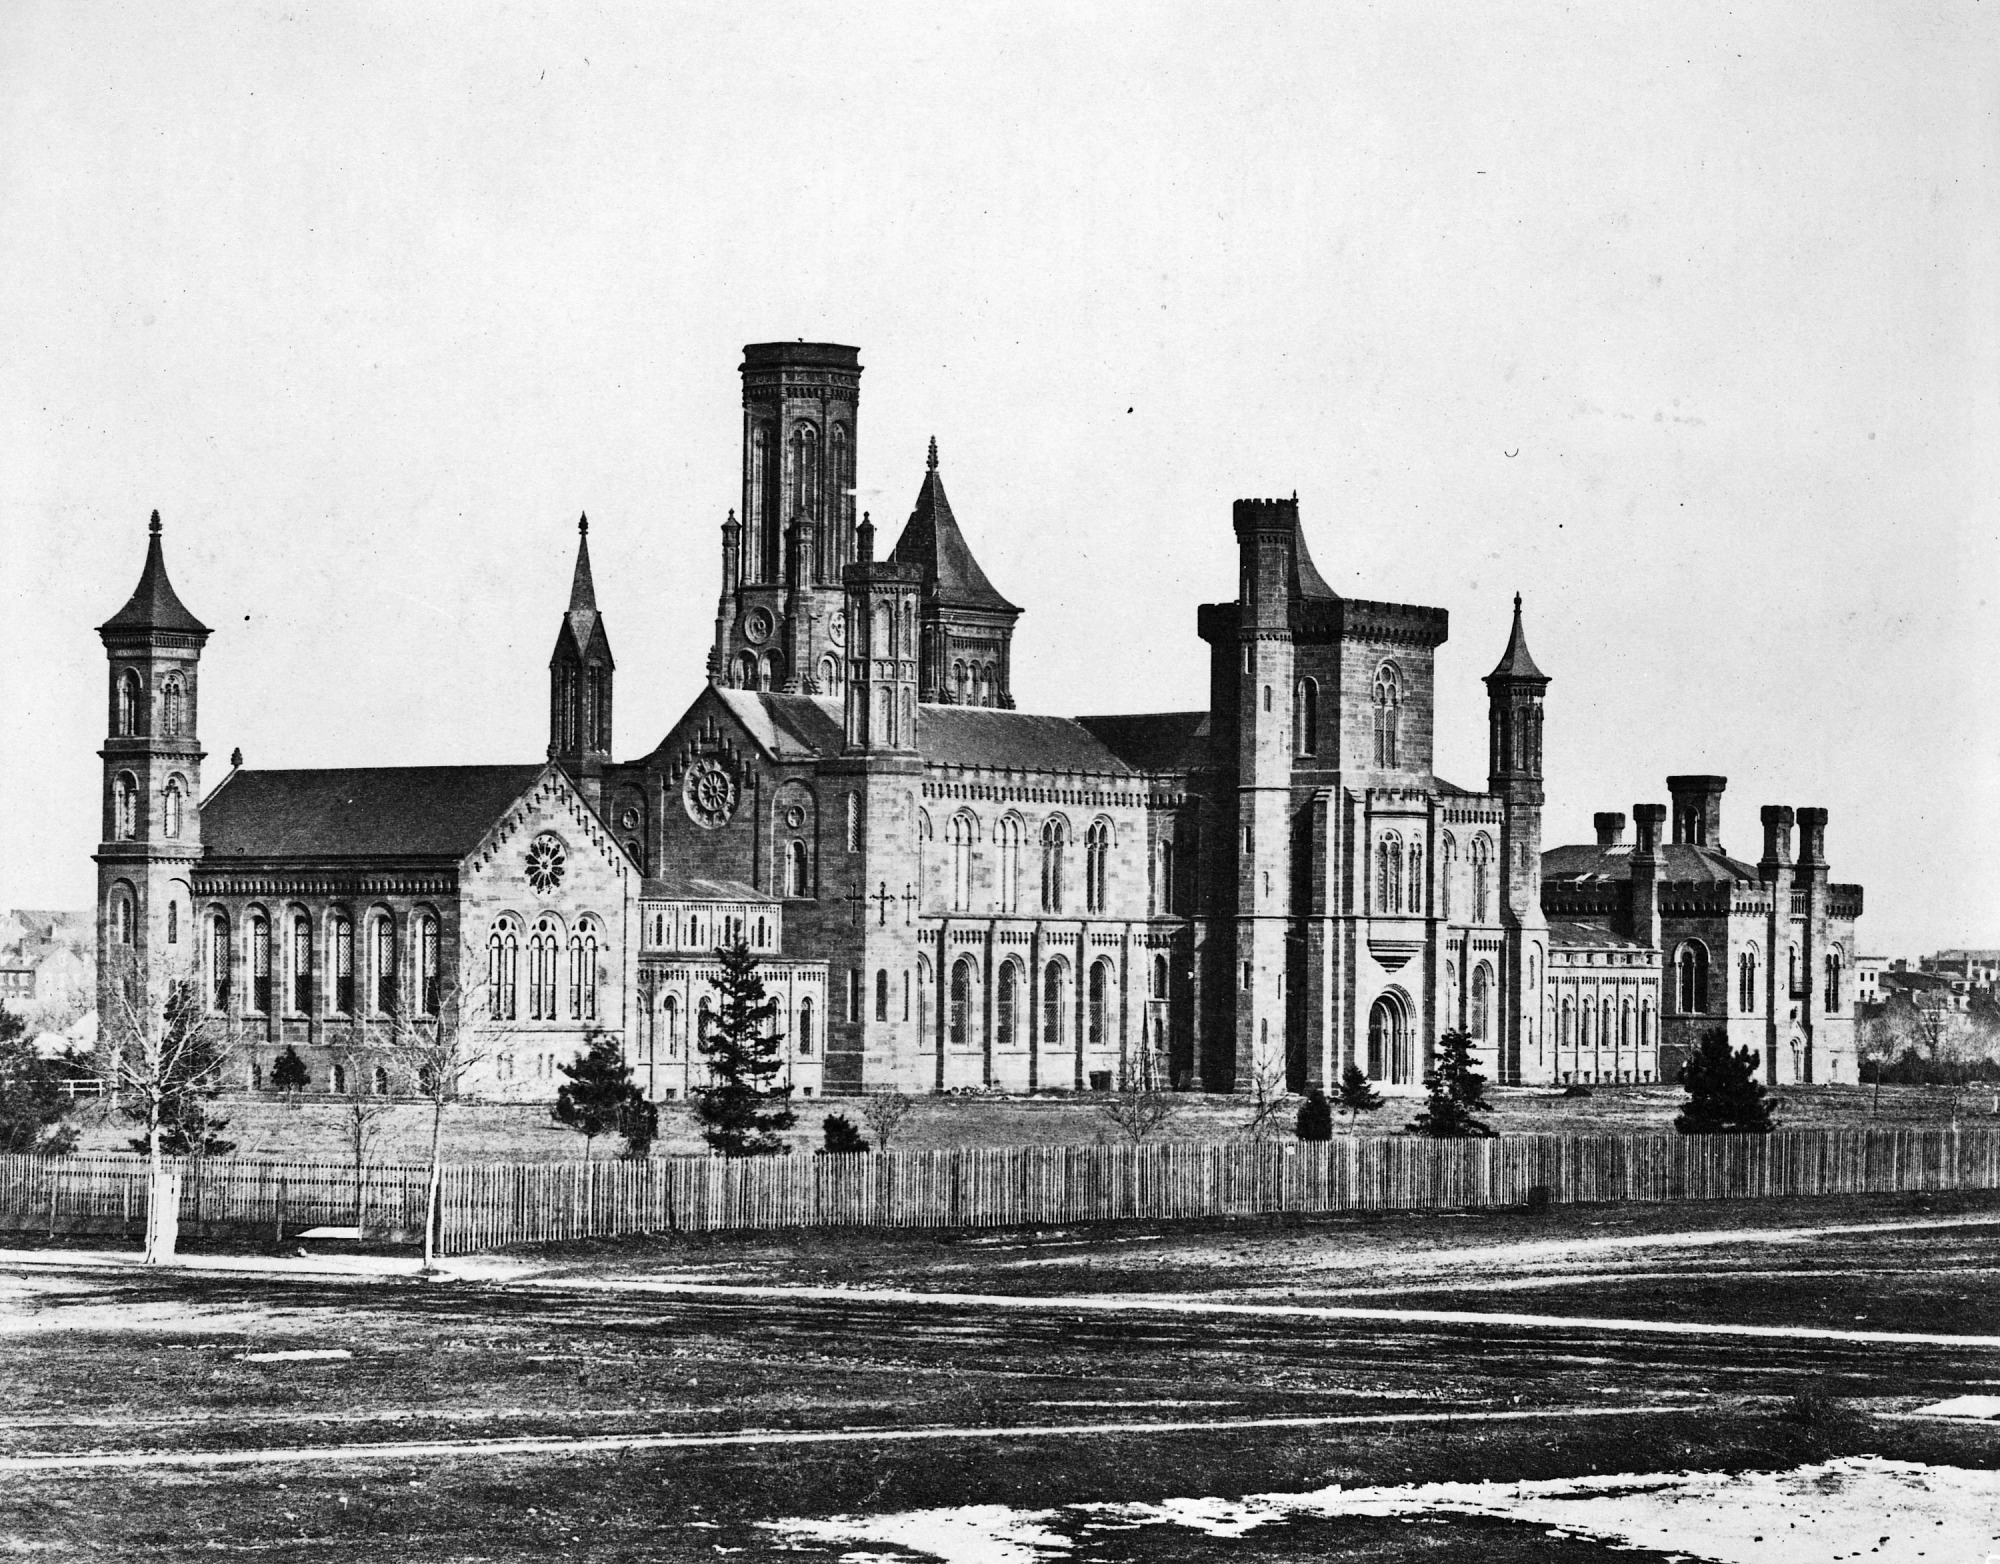 Architectural History of the Smithsonian Institution Building, 1846